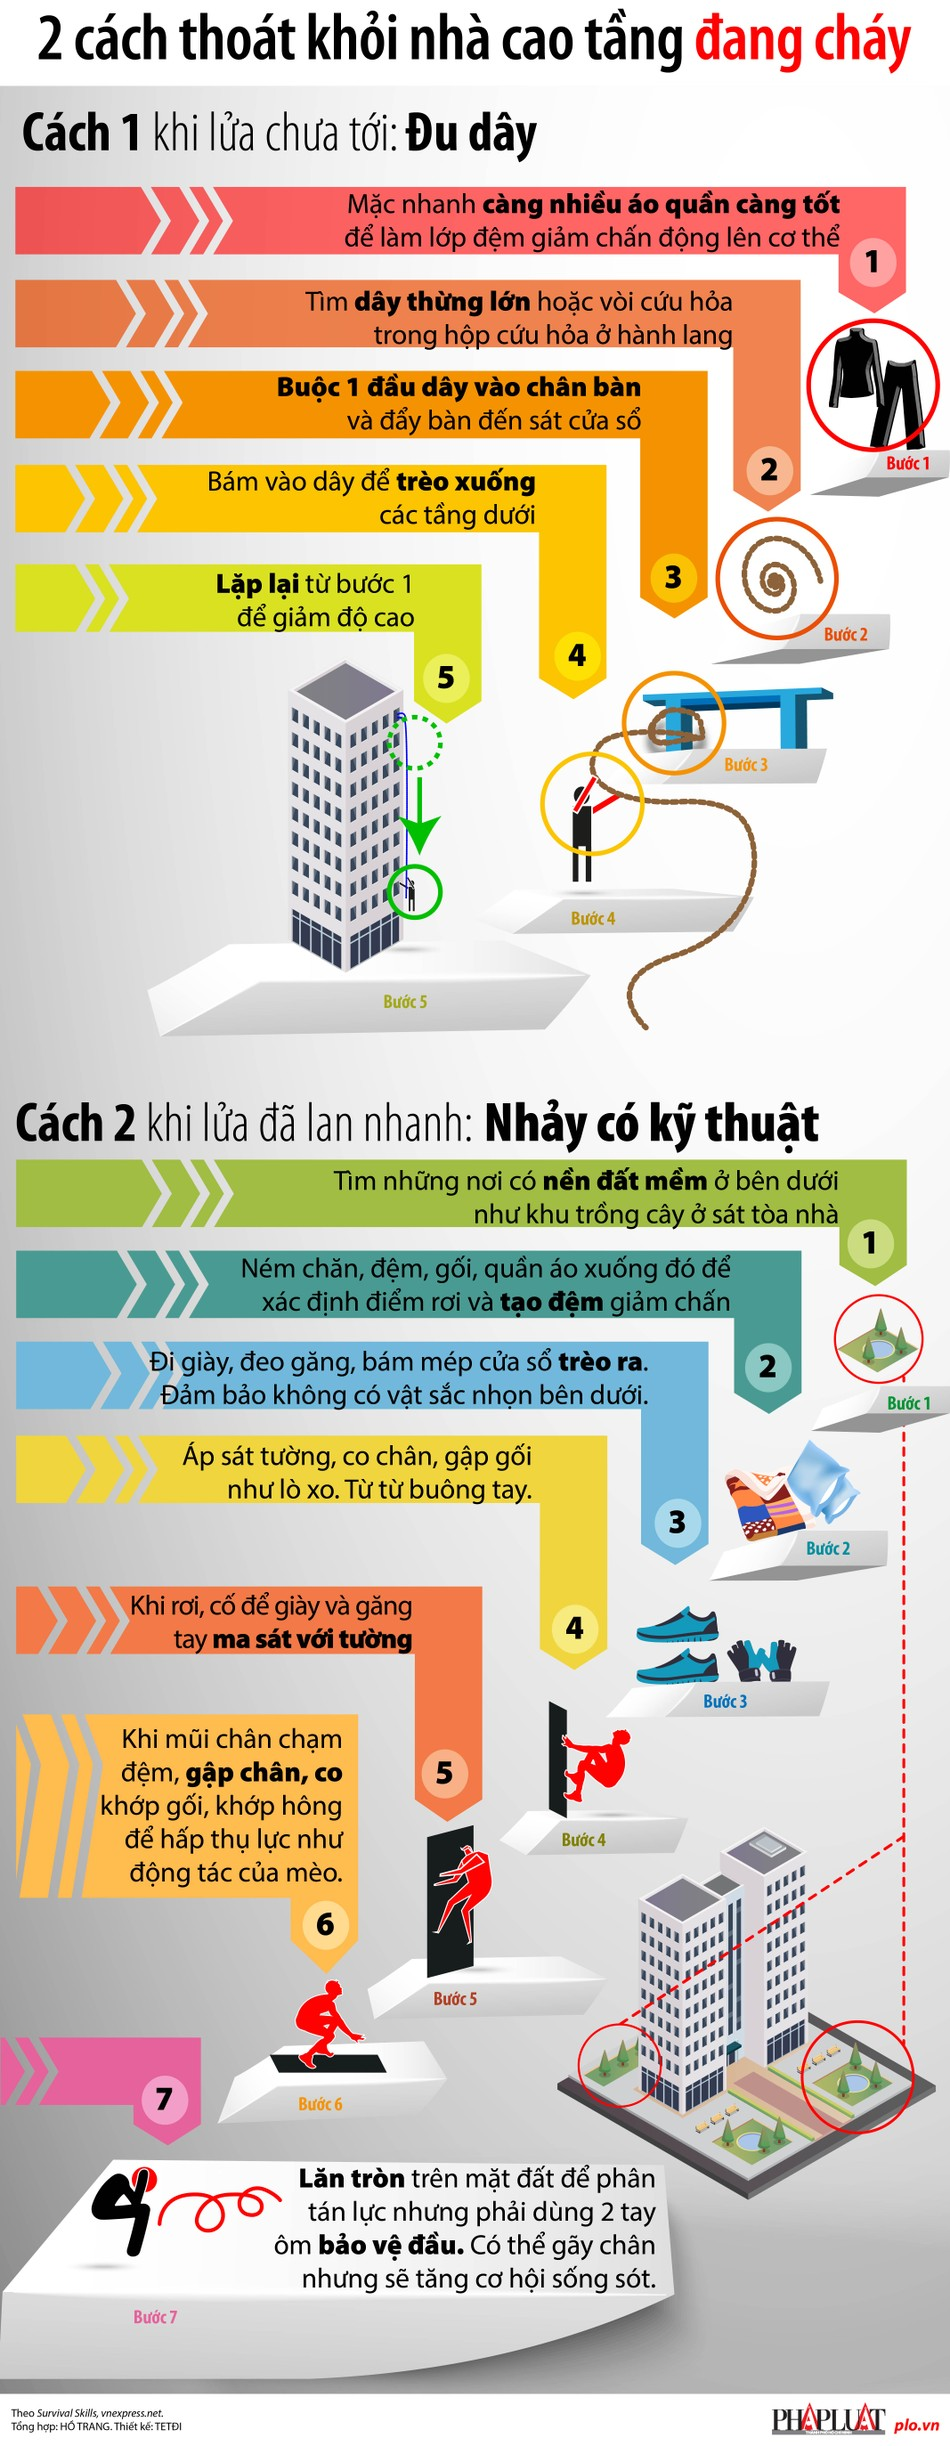 http://image.plo.vn/w950/uploaded/thuytrang/2017_06_15/chay_cao_oc-01_wctt.jpg